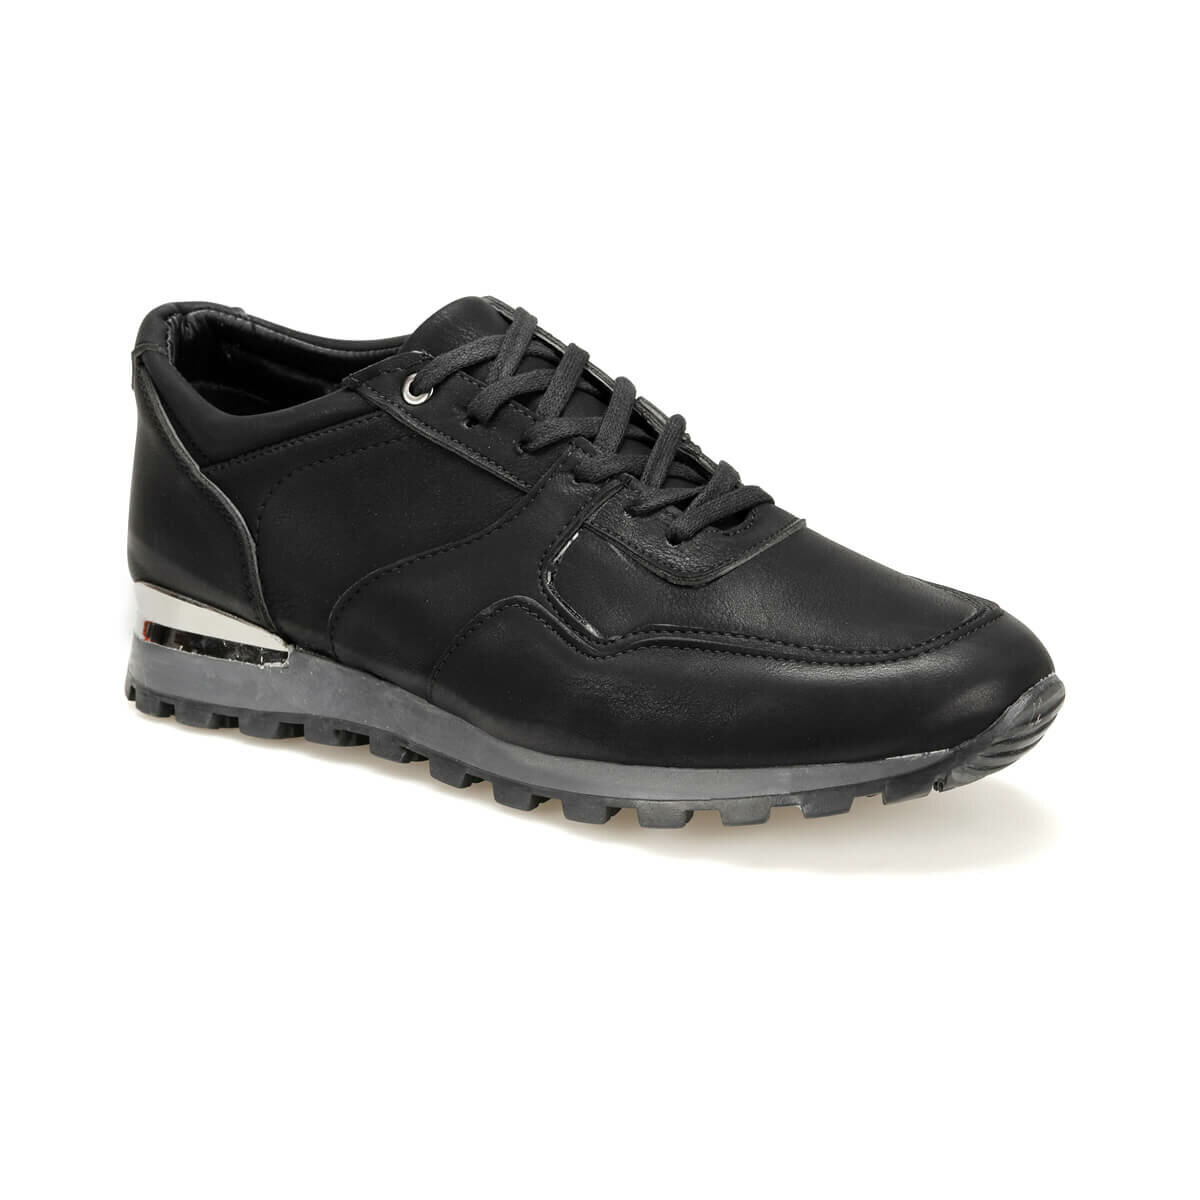 FLO 71450-C Black Male Shoes Forester